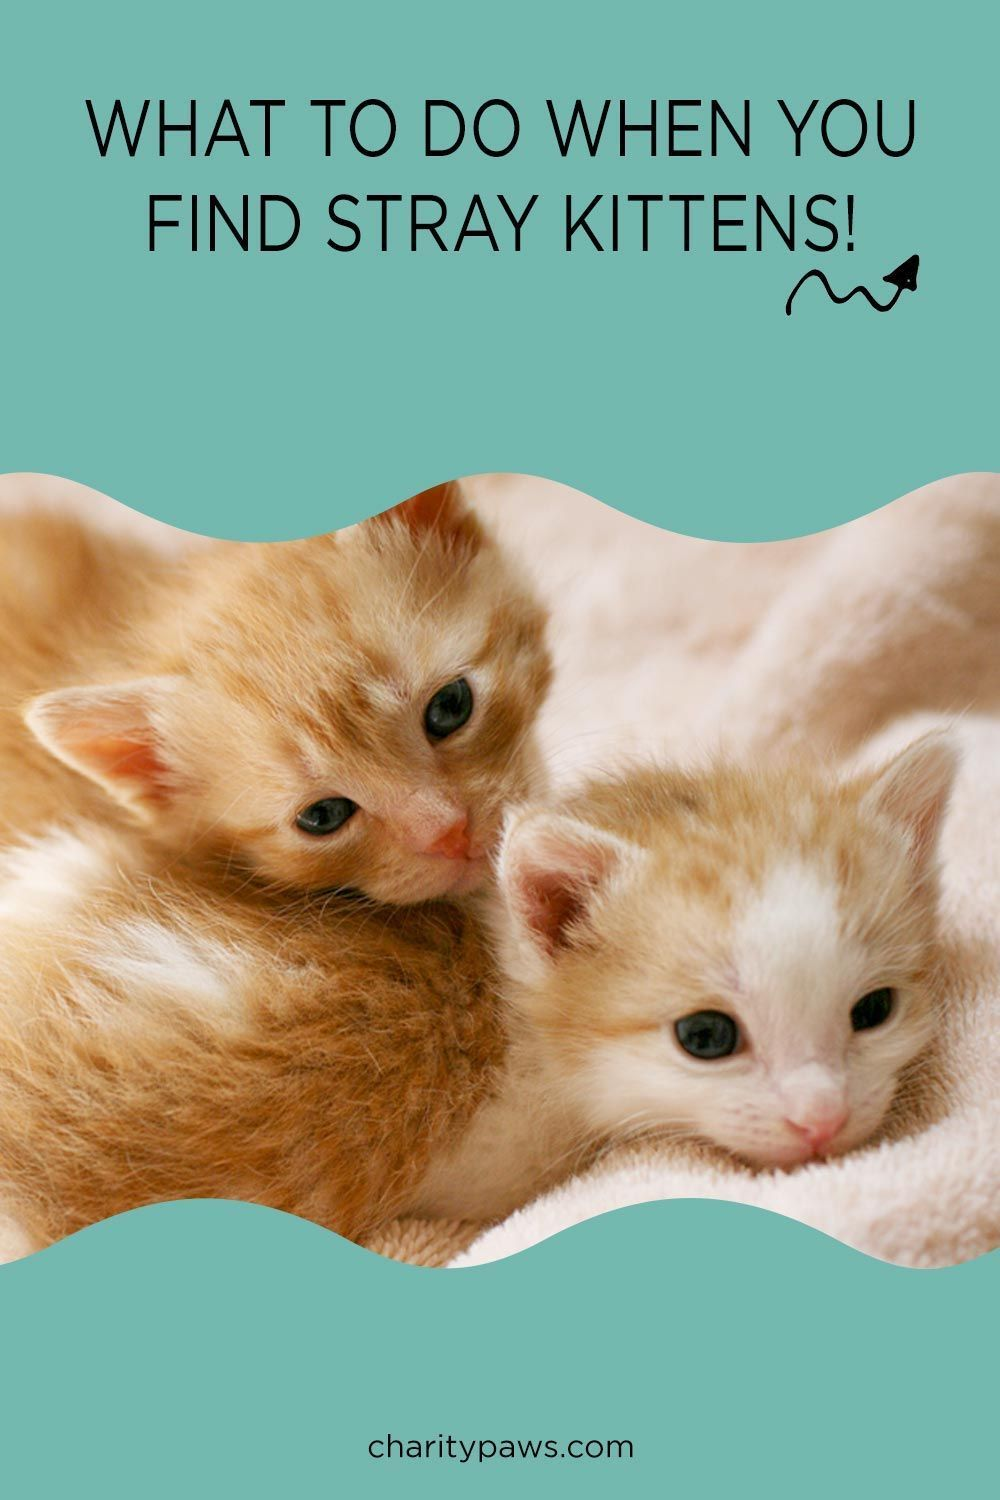 Pet Animal Rescue News Stories Reviews Charitypaws In 2020 Kittens Animal Rescue Animals